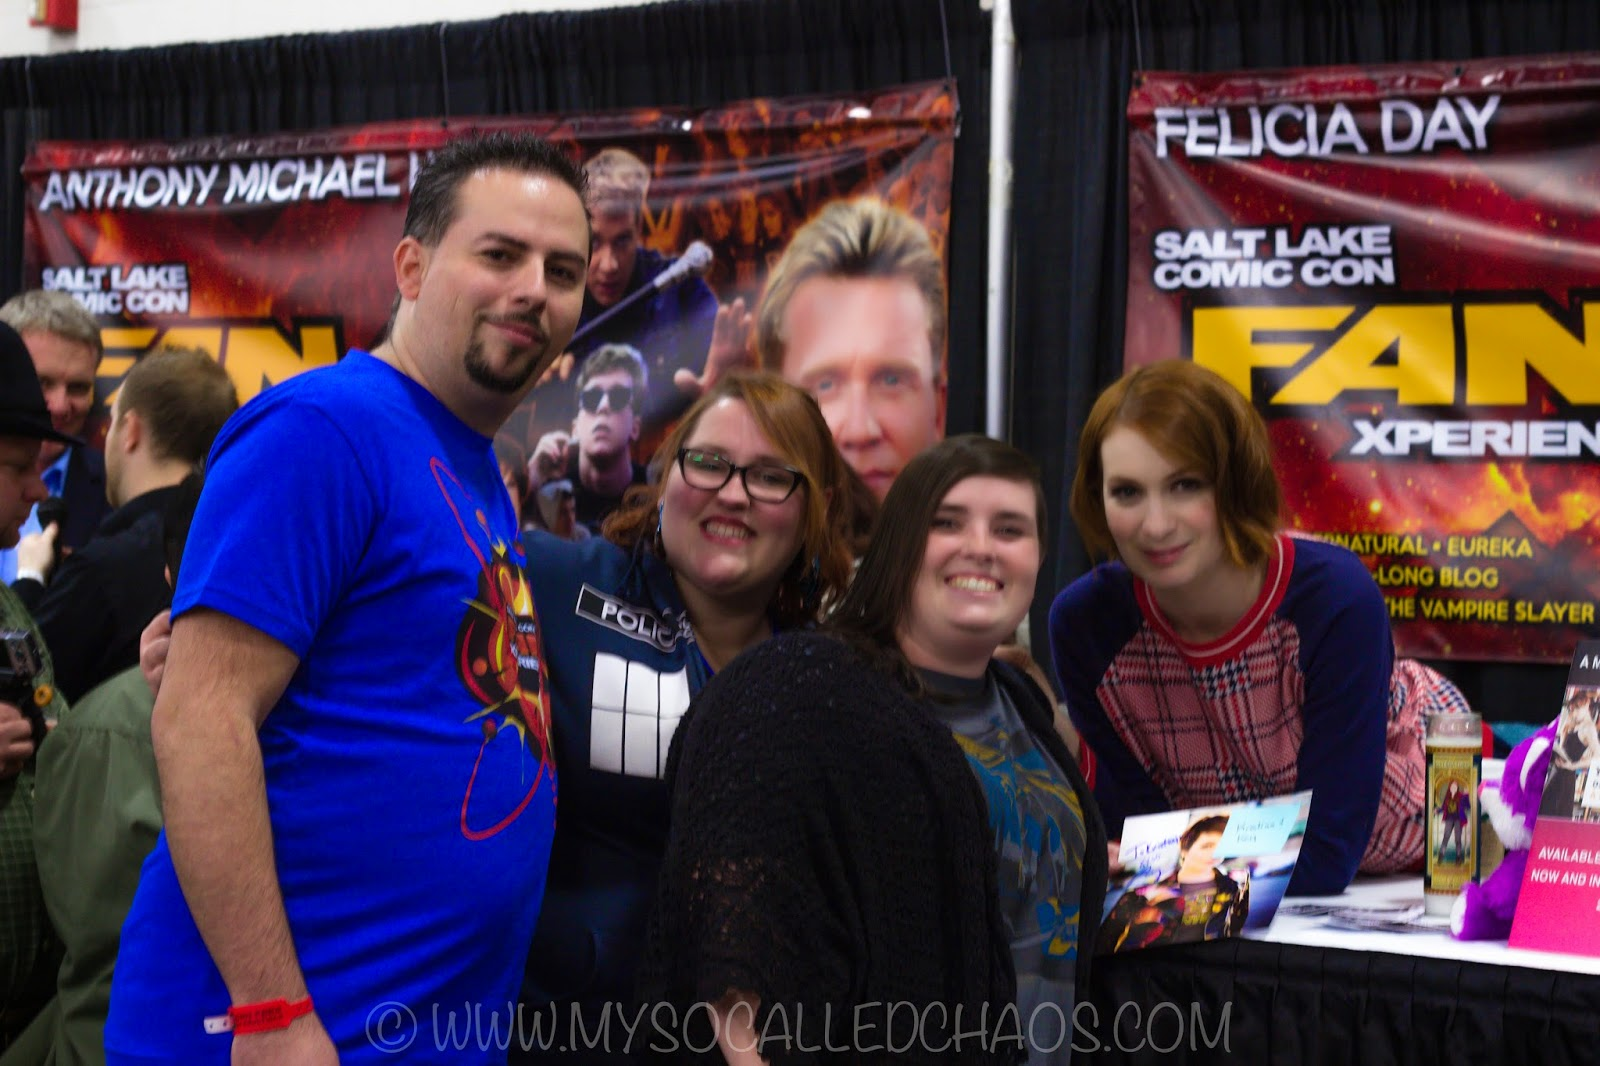 Meeting Felicia Day at Salt Lake Comic Con FanX 2015 #FanX15